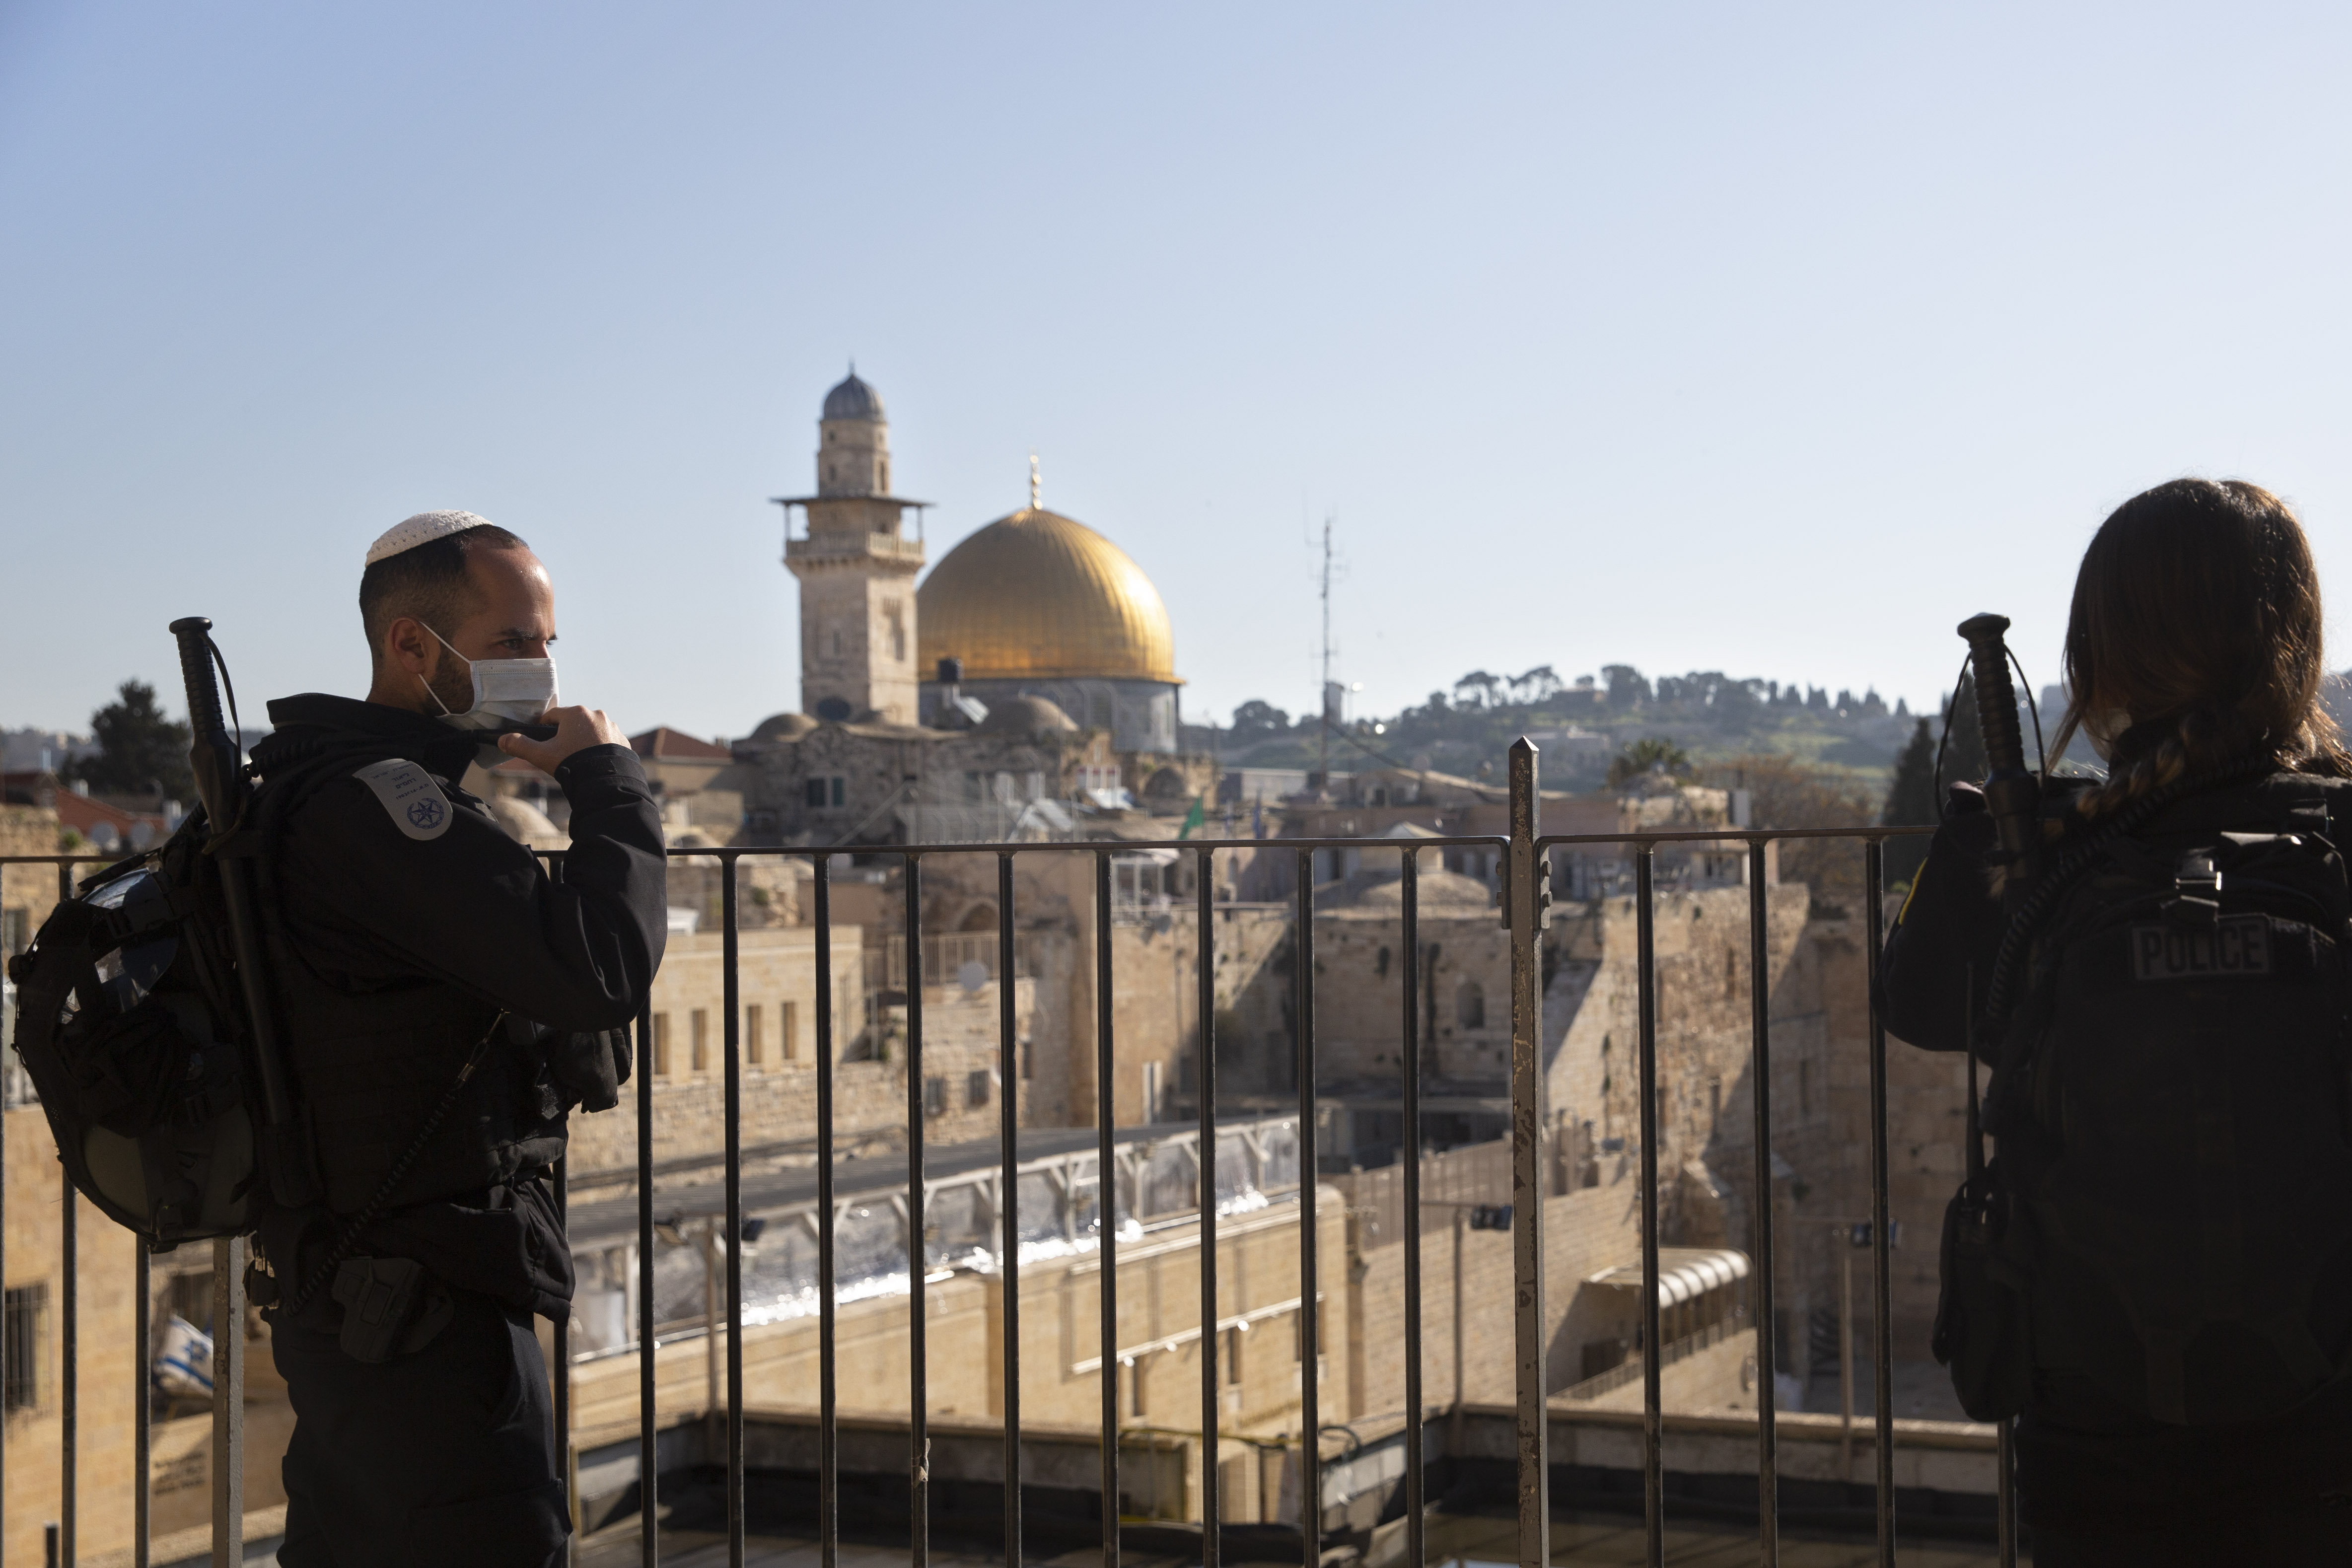 Israeli police enforce a nationwide lockdown on Passover to suppress spread of the coronavirus. Despite Israelis' high compliance with the nation's strict restrictions, police issued more than 2,000 fine citations to violators over the holiday.